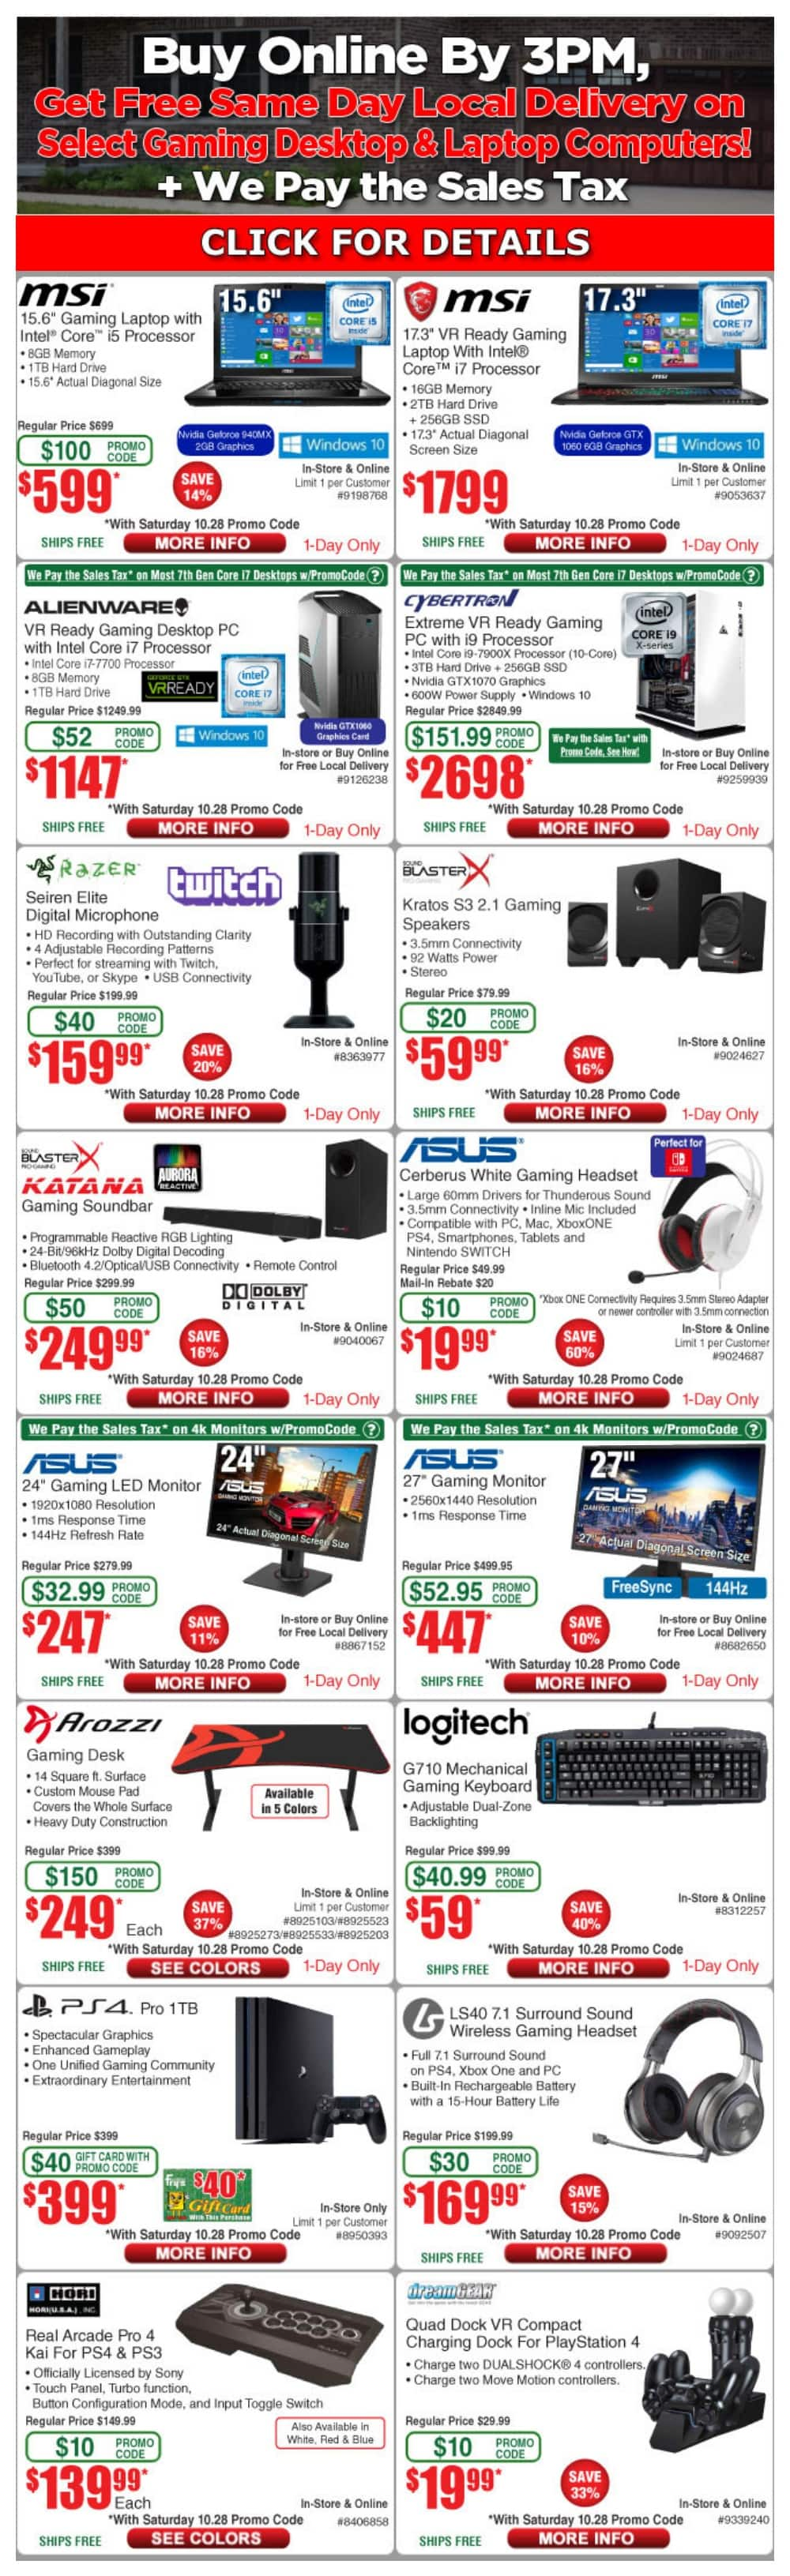 YMMV Fry's 10/28/2017 Weekly Email Deal Gamer Promo Code Sale | Logitech G710 $59 | Asus Cerberus Headset $20